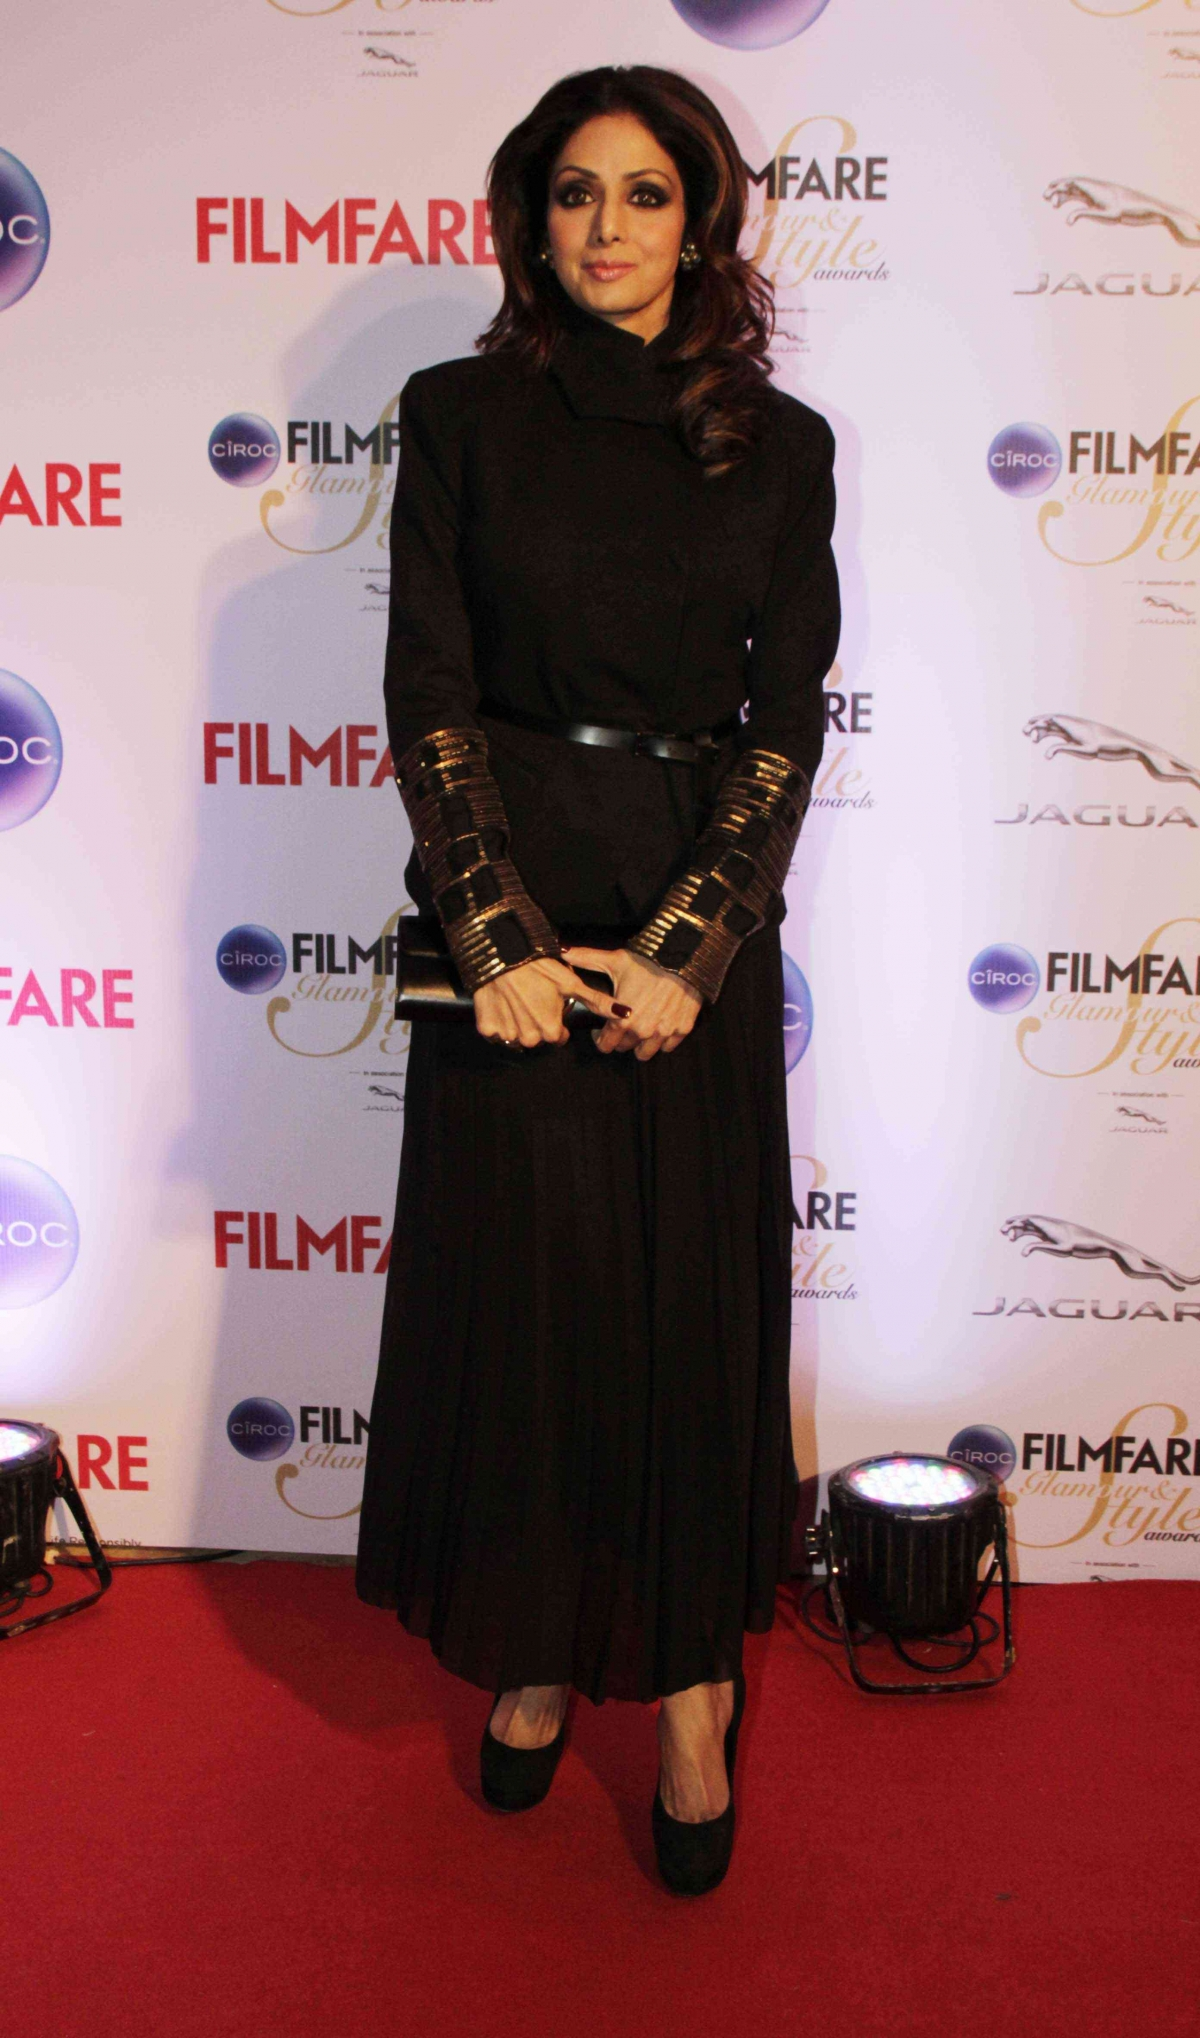 http://data1.ibtimes.co.in/en/full/564784/kareena-kapoor-khan-jacqueline-fernandez-alia-bhatt-other-best-dressed-divas-filmfare-glamour.jpg